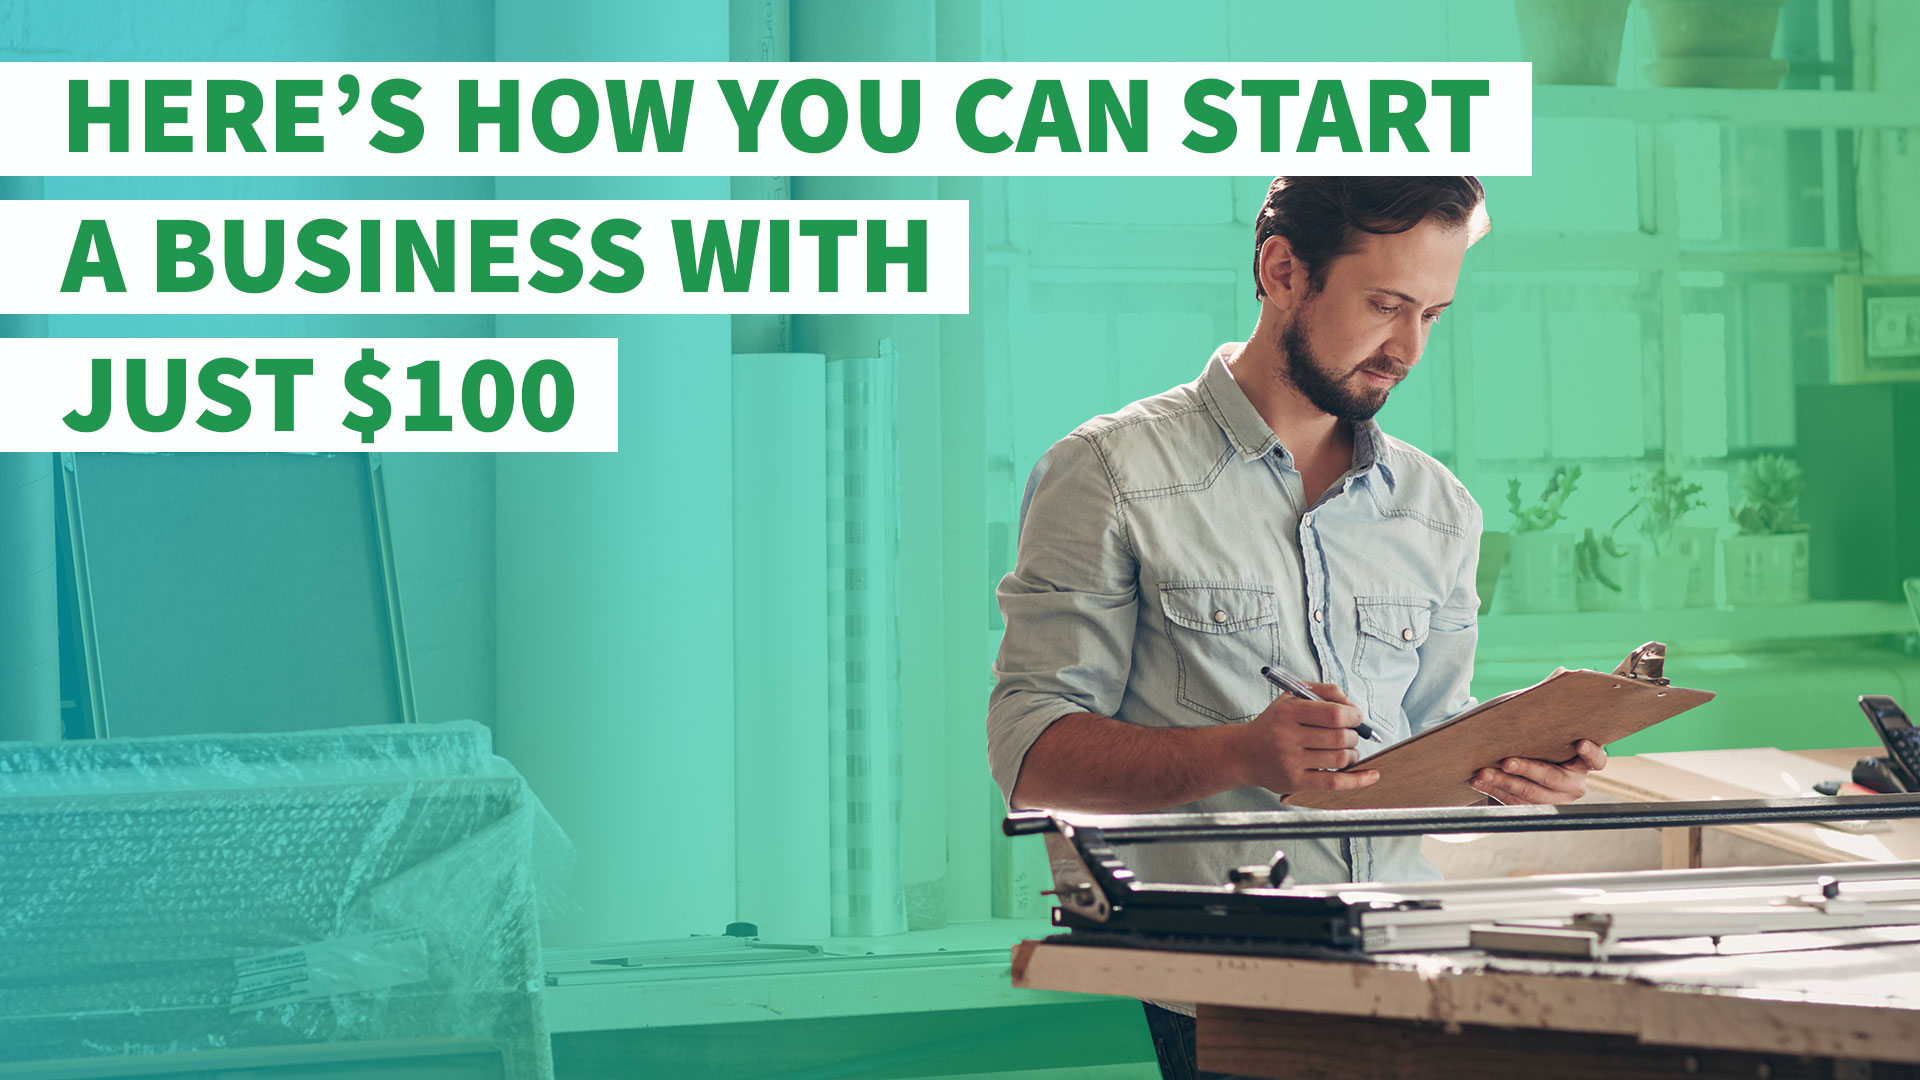 Here's How You Can Start A Business With Just $100